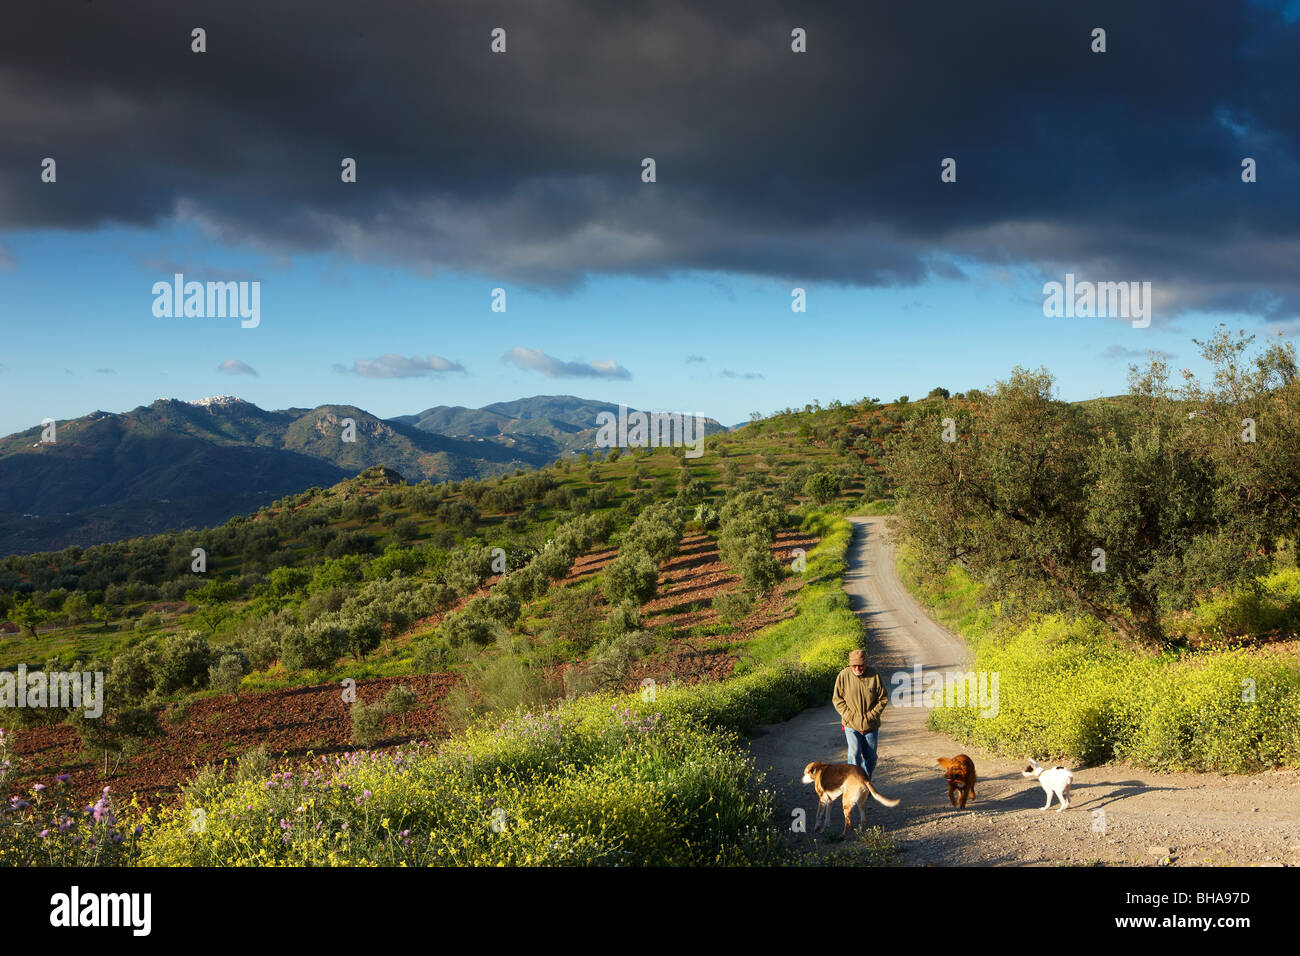 Andalucian workshop; Dave Waterman with his dogs nr Los Molinos, Periana, Andalucia, Spain - Stock Image